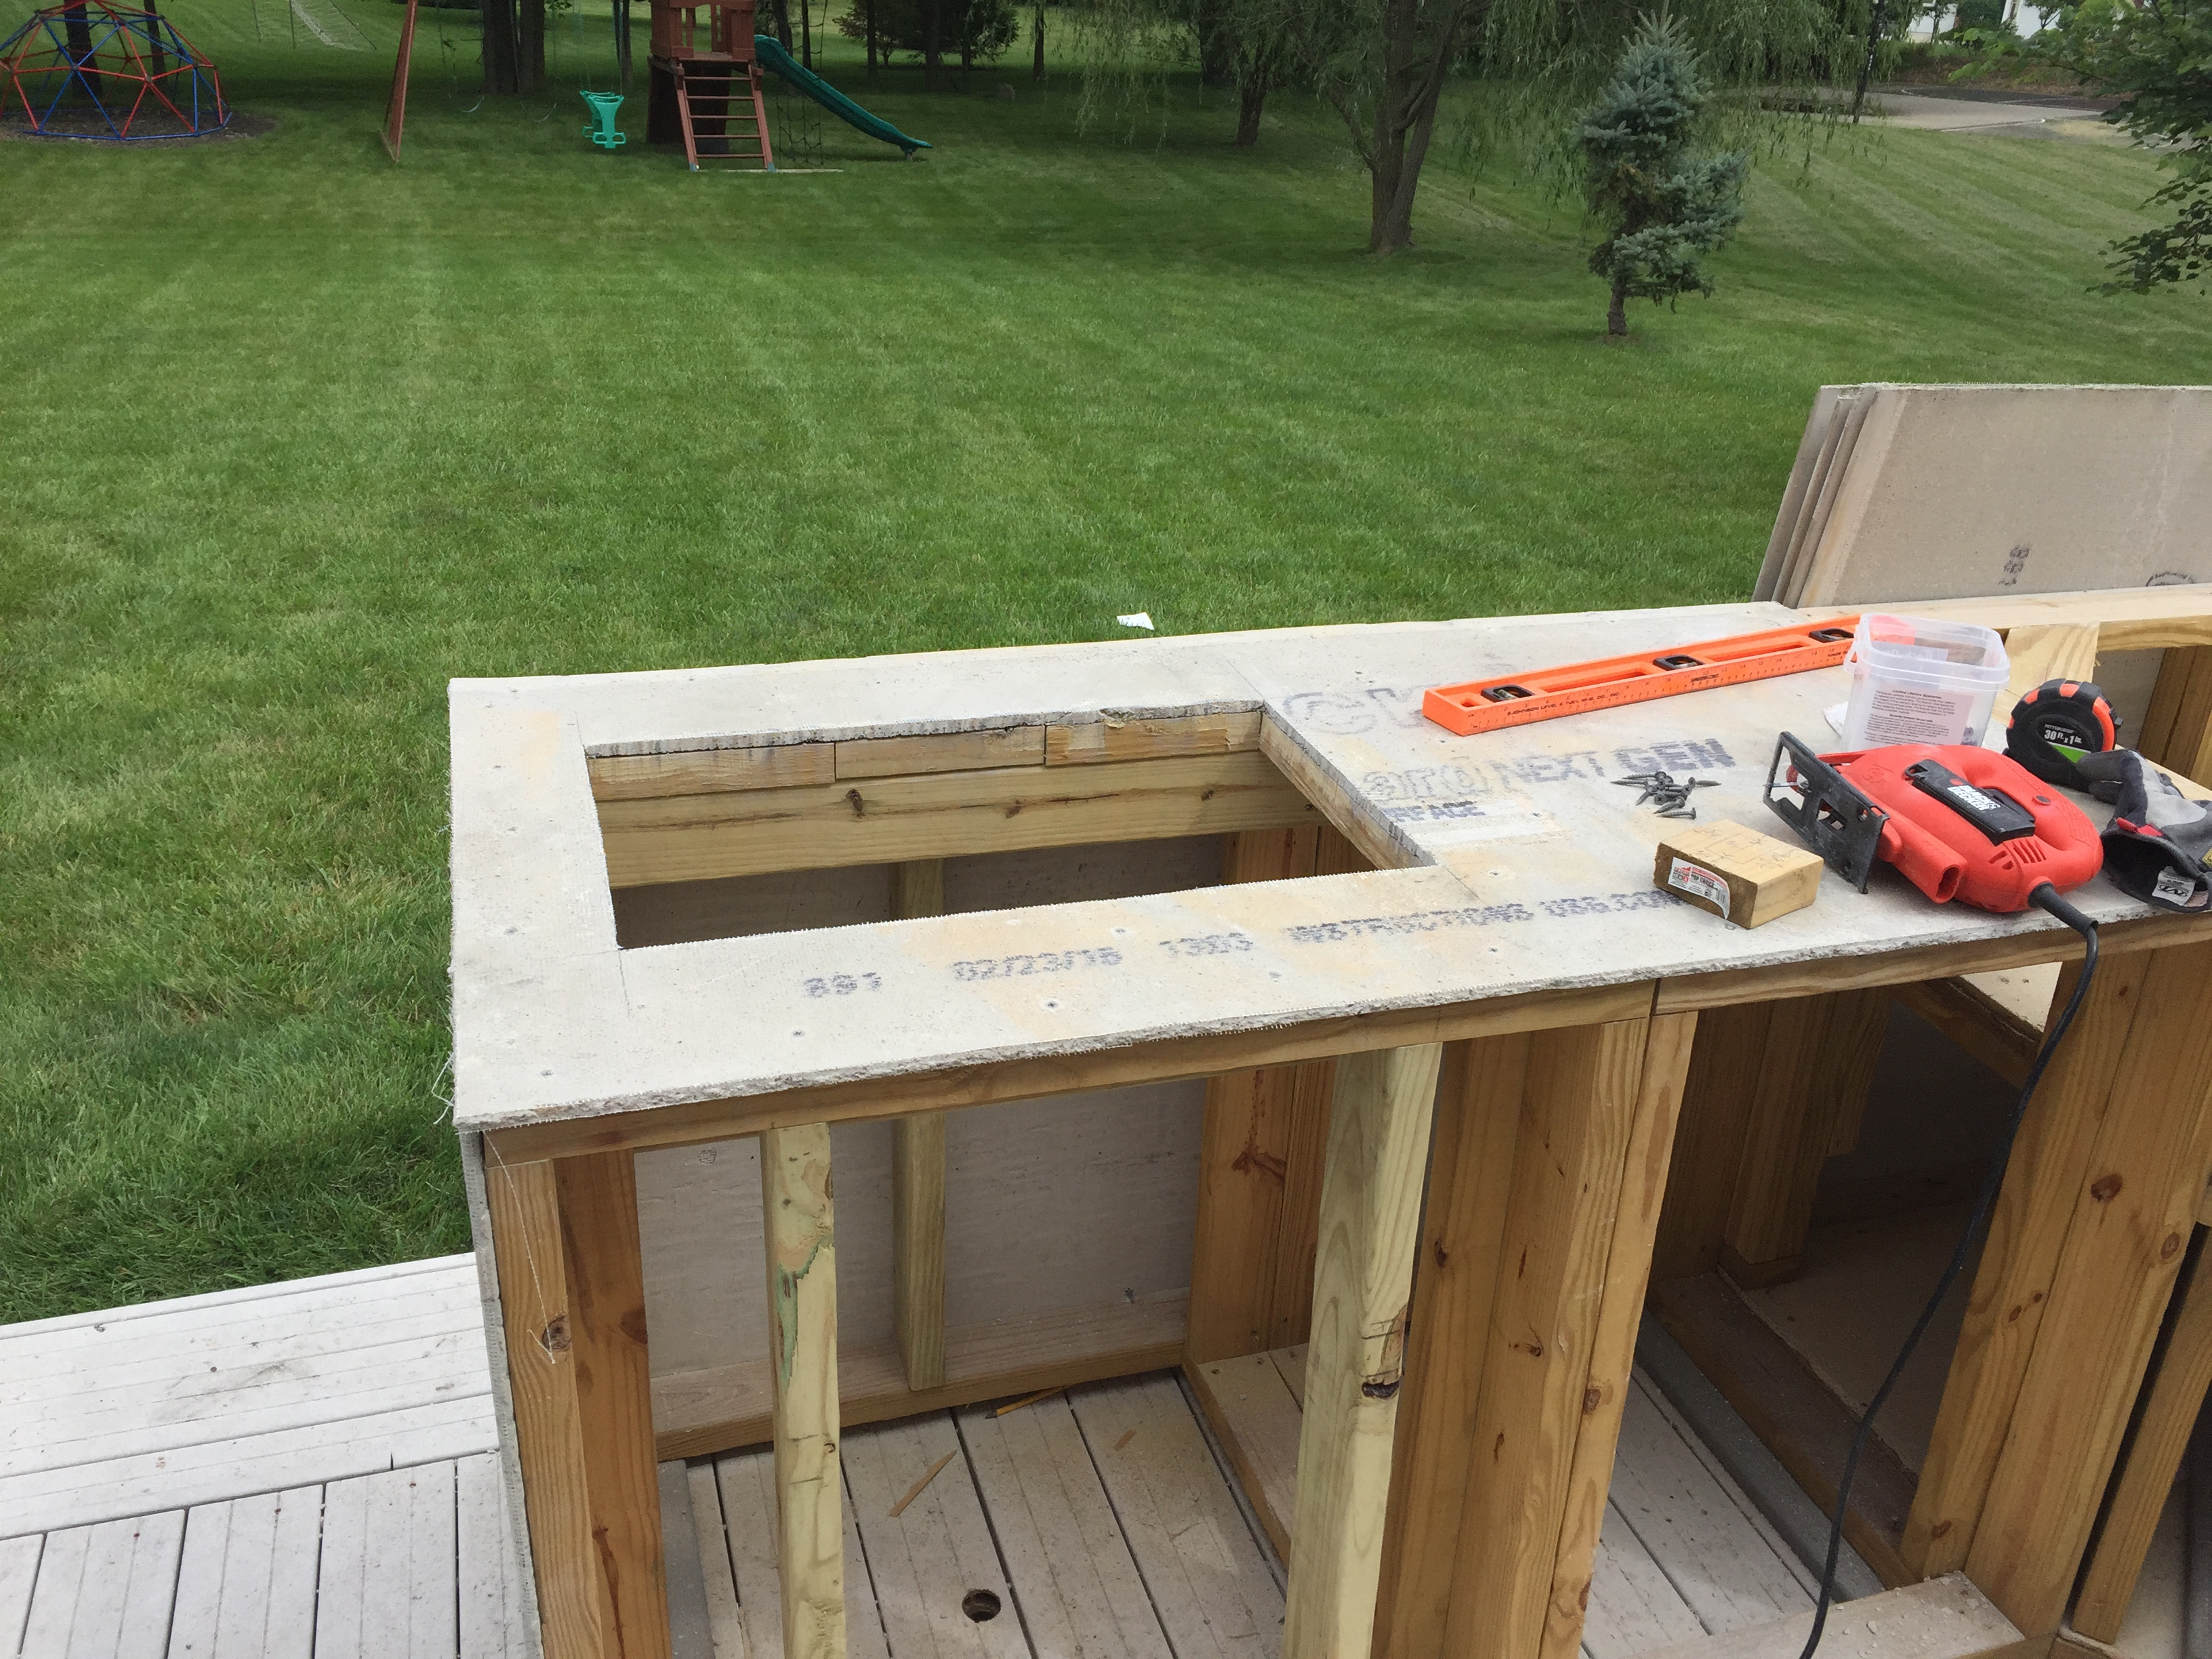 Guy With No Experience Builds Outdoor Kitchen That Would Make Any Neighbor Jealous